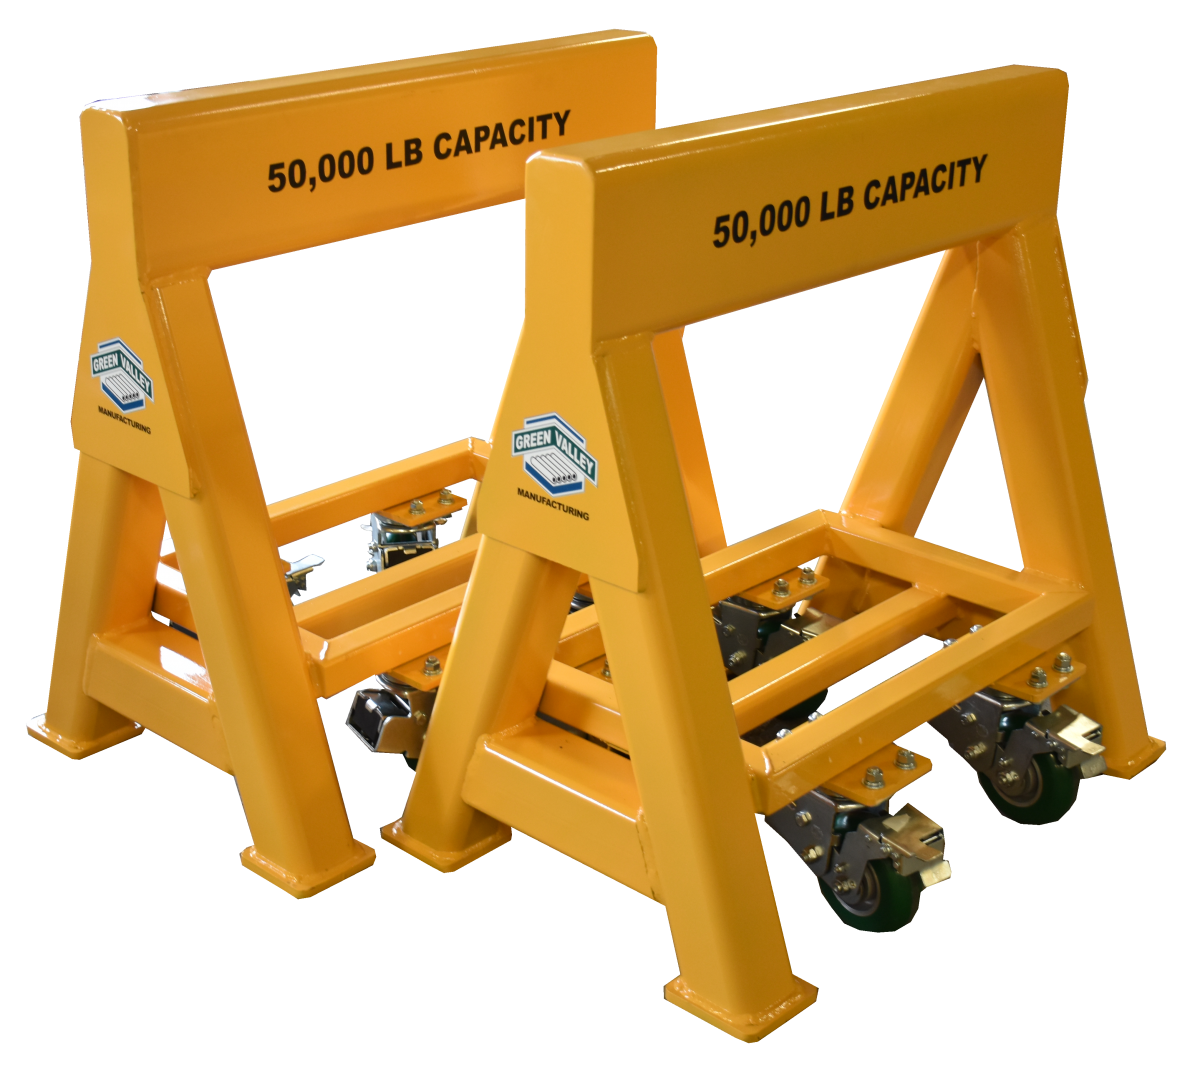 Industrial high capacity steel sawhorse 50,000 lb. Steel Top Spring Loaded Compression Caster (194682)